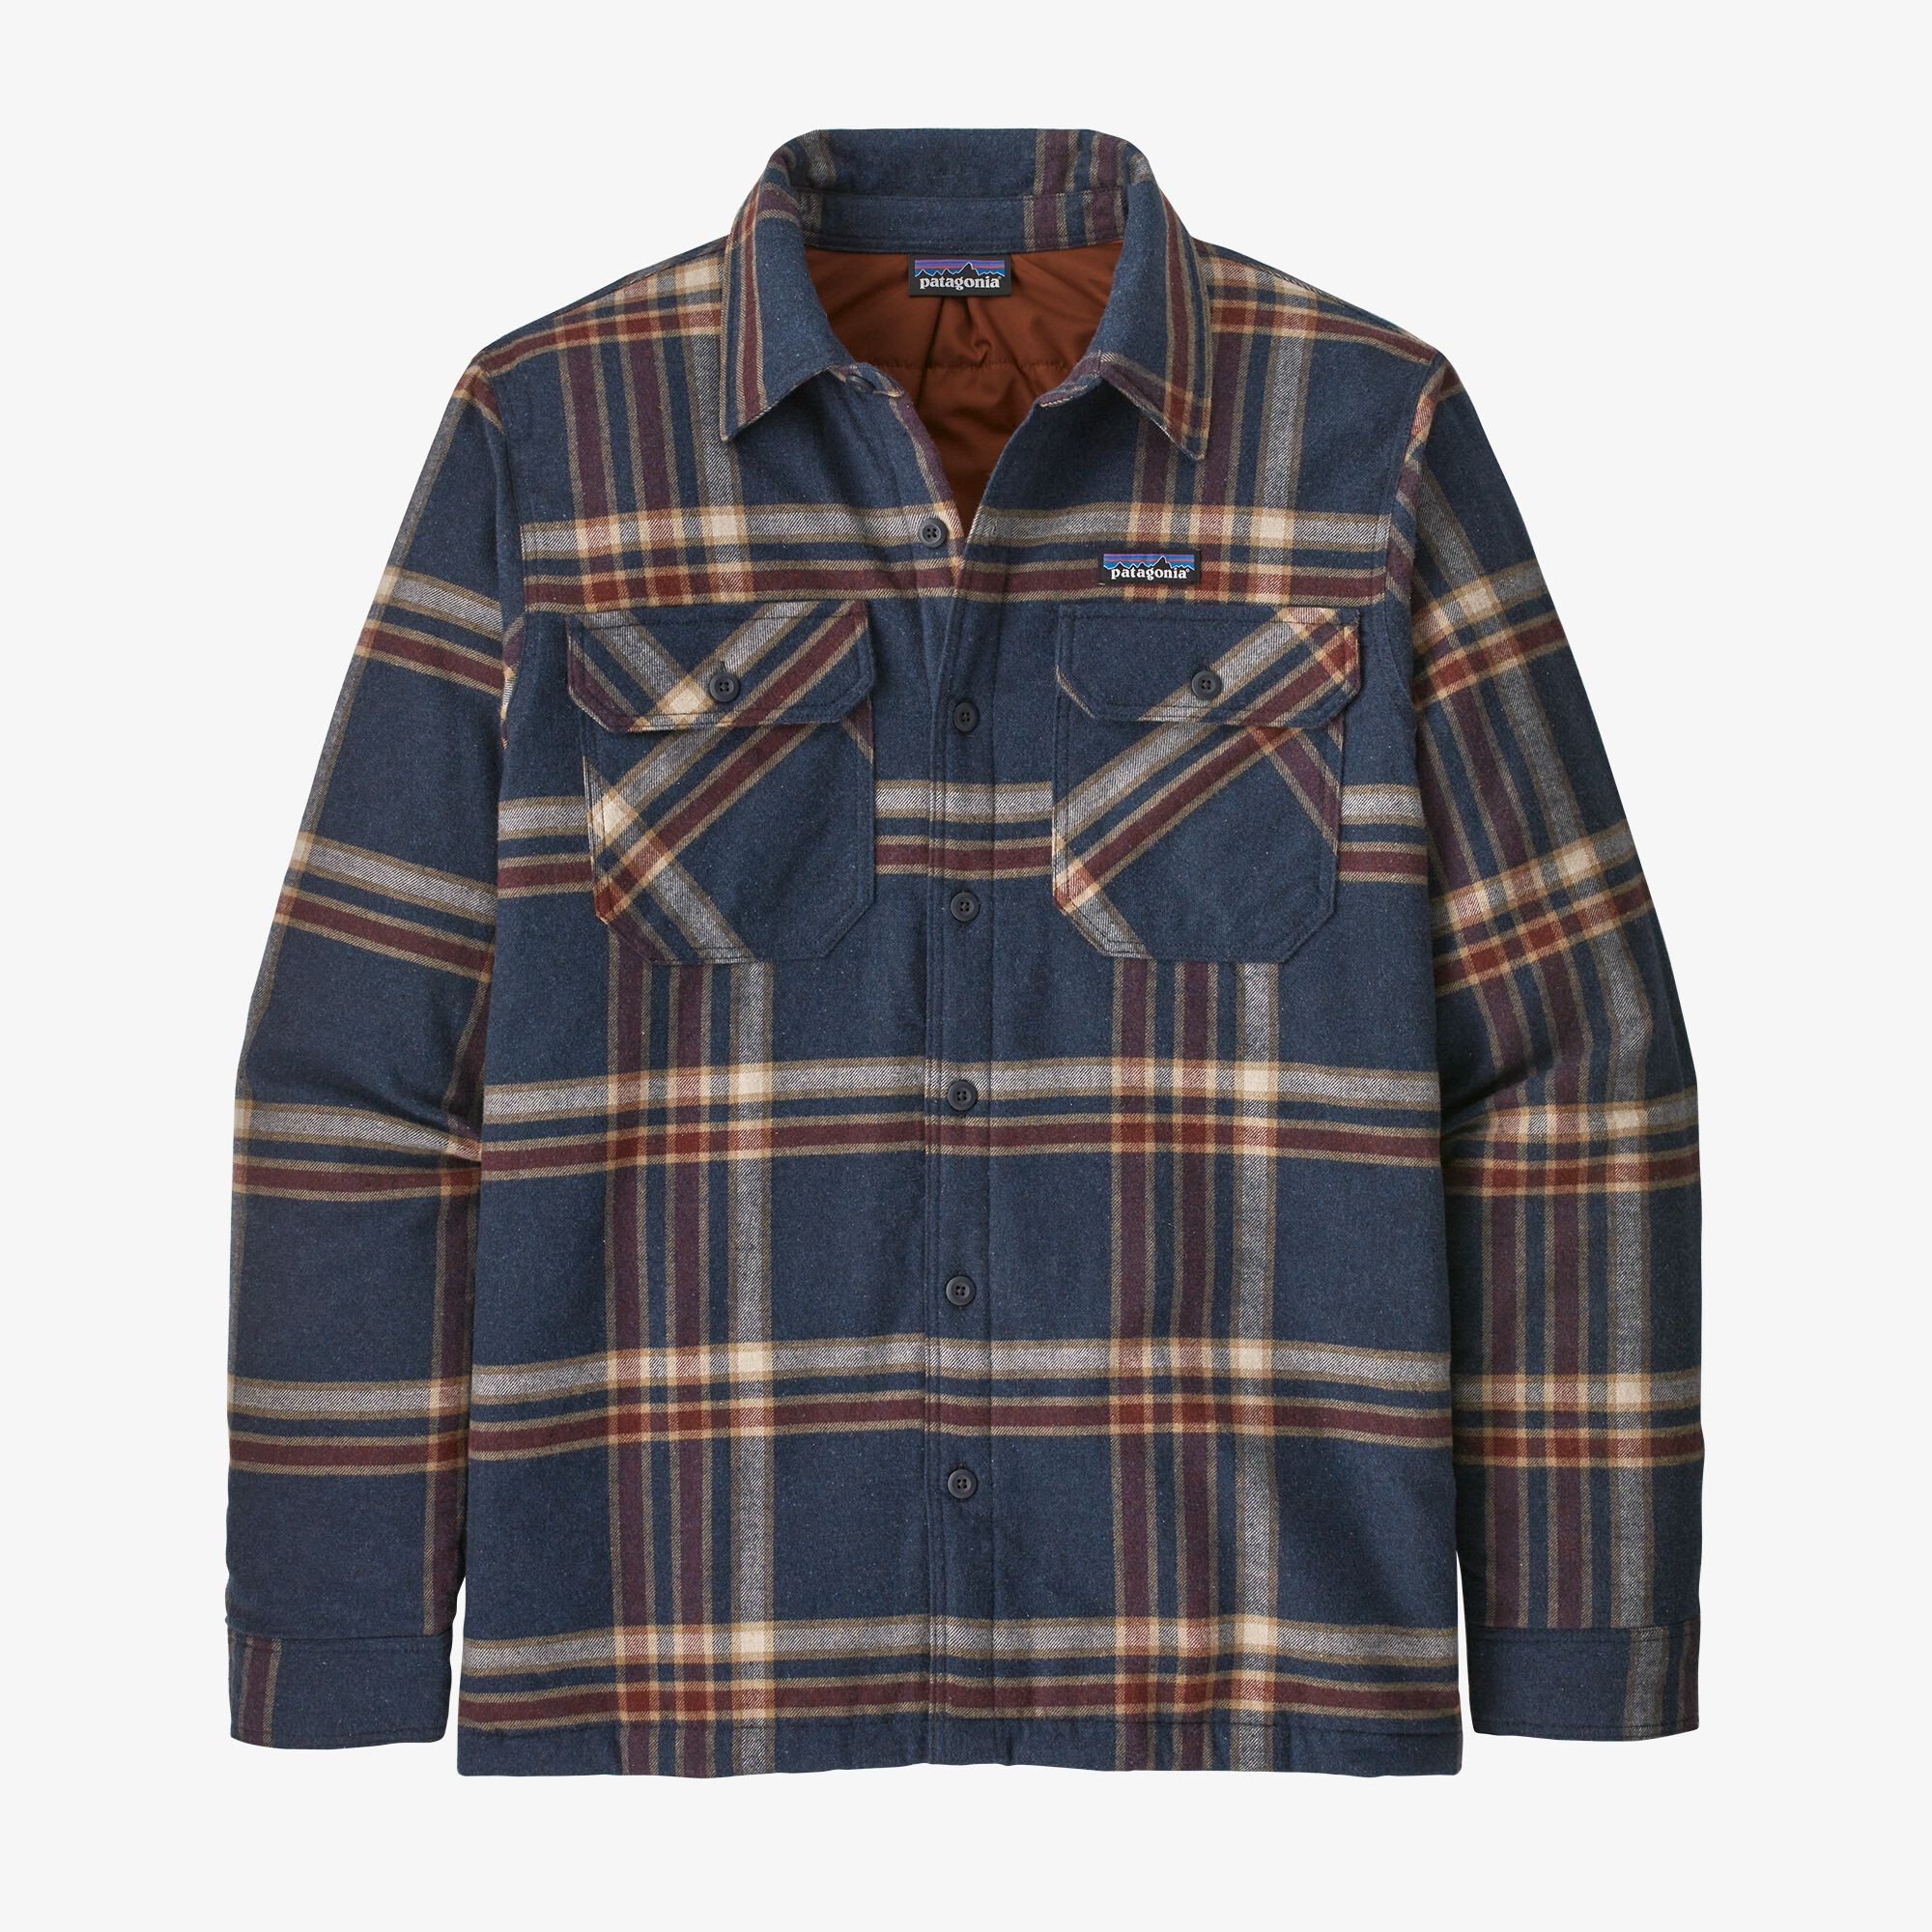 Patagonia Insulated Org Cotton MW Fjord Flannel Shirt, M's